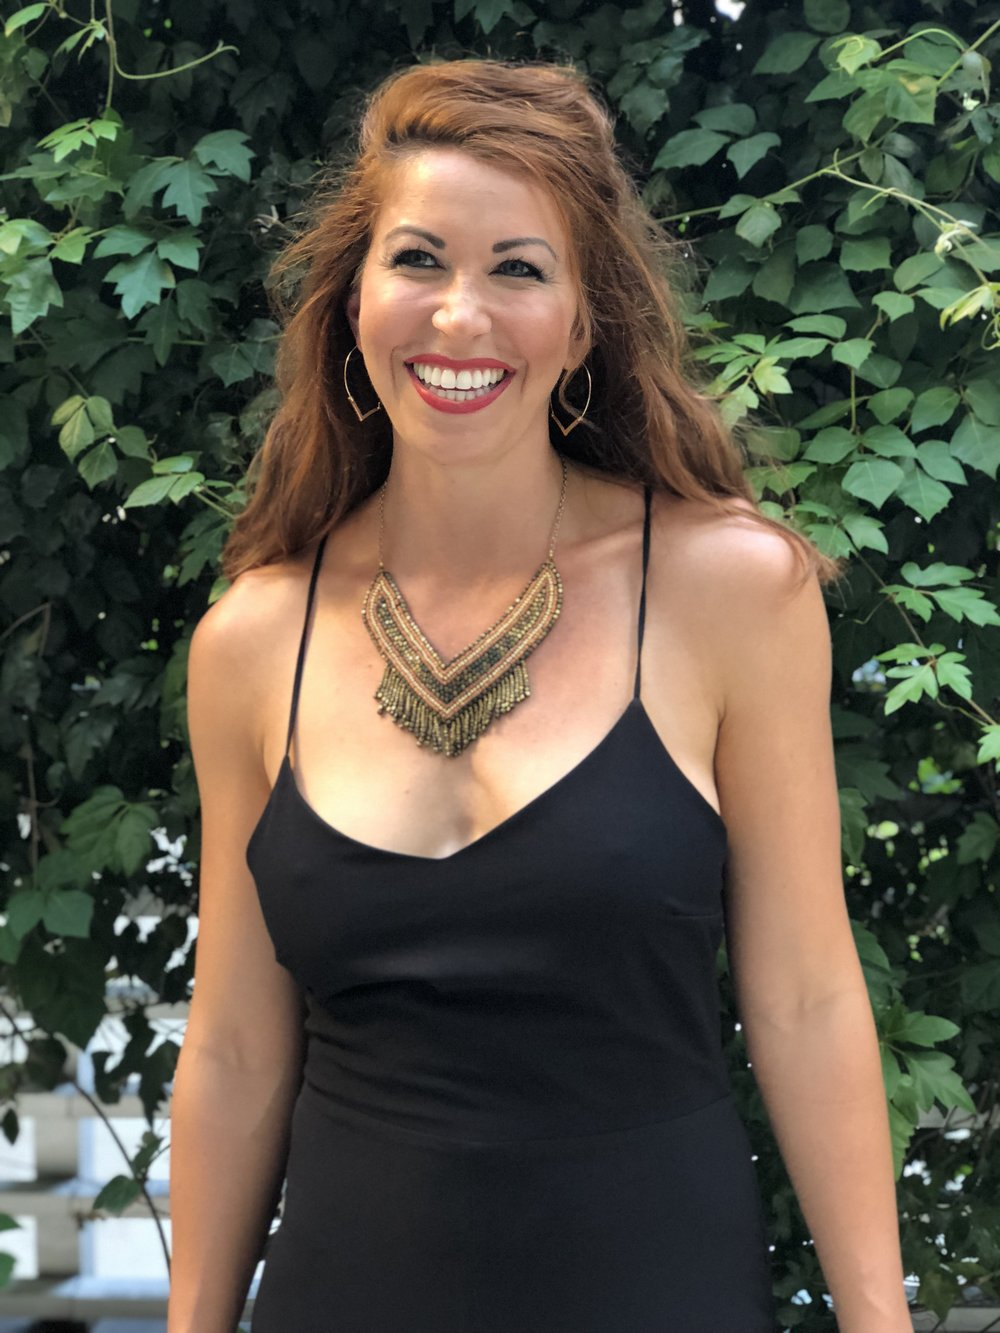 - krista is a certified life + business + sex coach and started her online coaching business while traveling around the world for 2 years. she also trains new life coaches through inner glow circle.if you are curious about becoming a life coach then message me below in the comments or check out my website here: https://www.kristakathleen.com/become-a-coach/